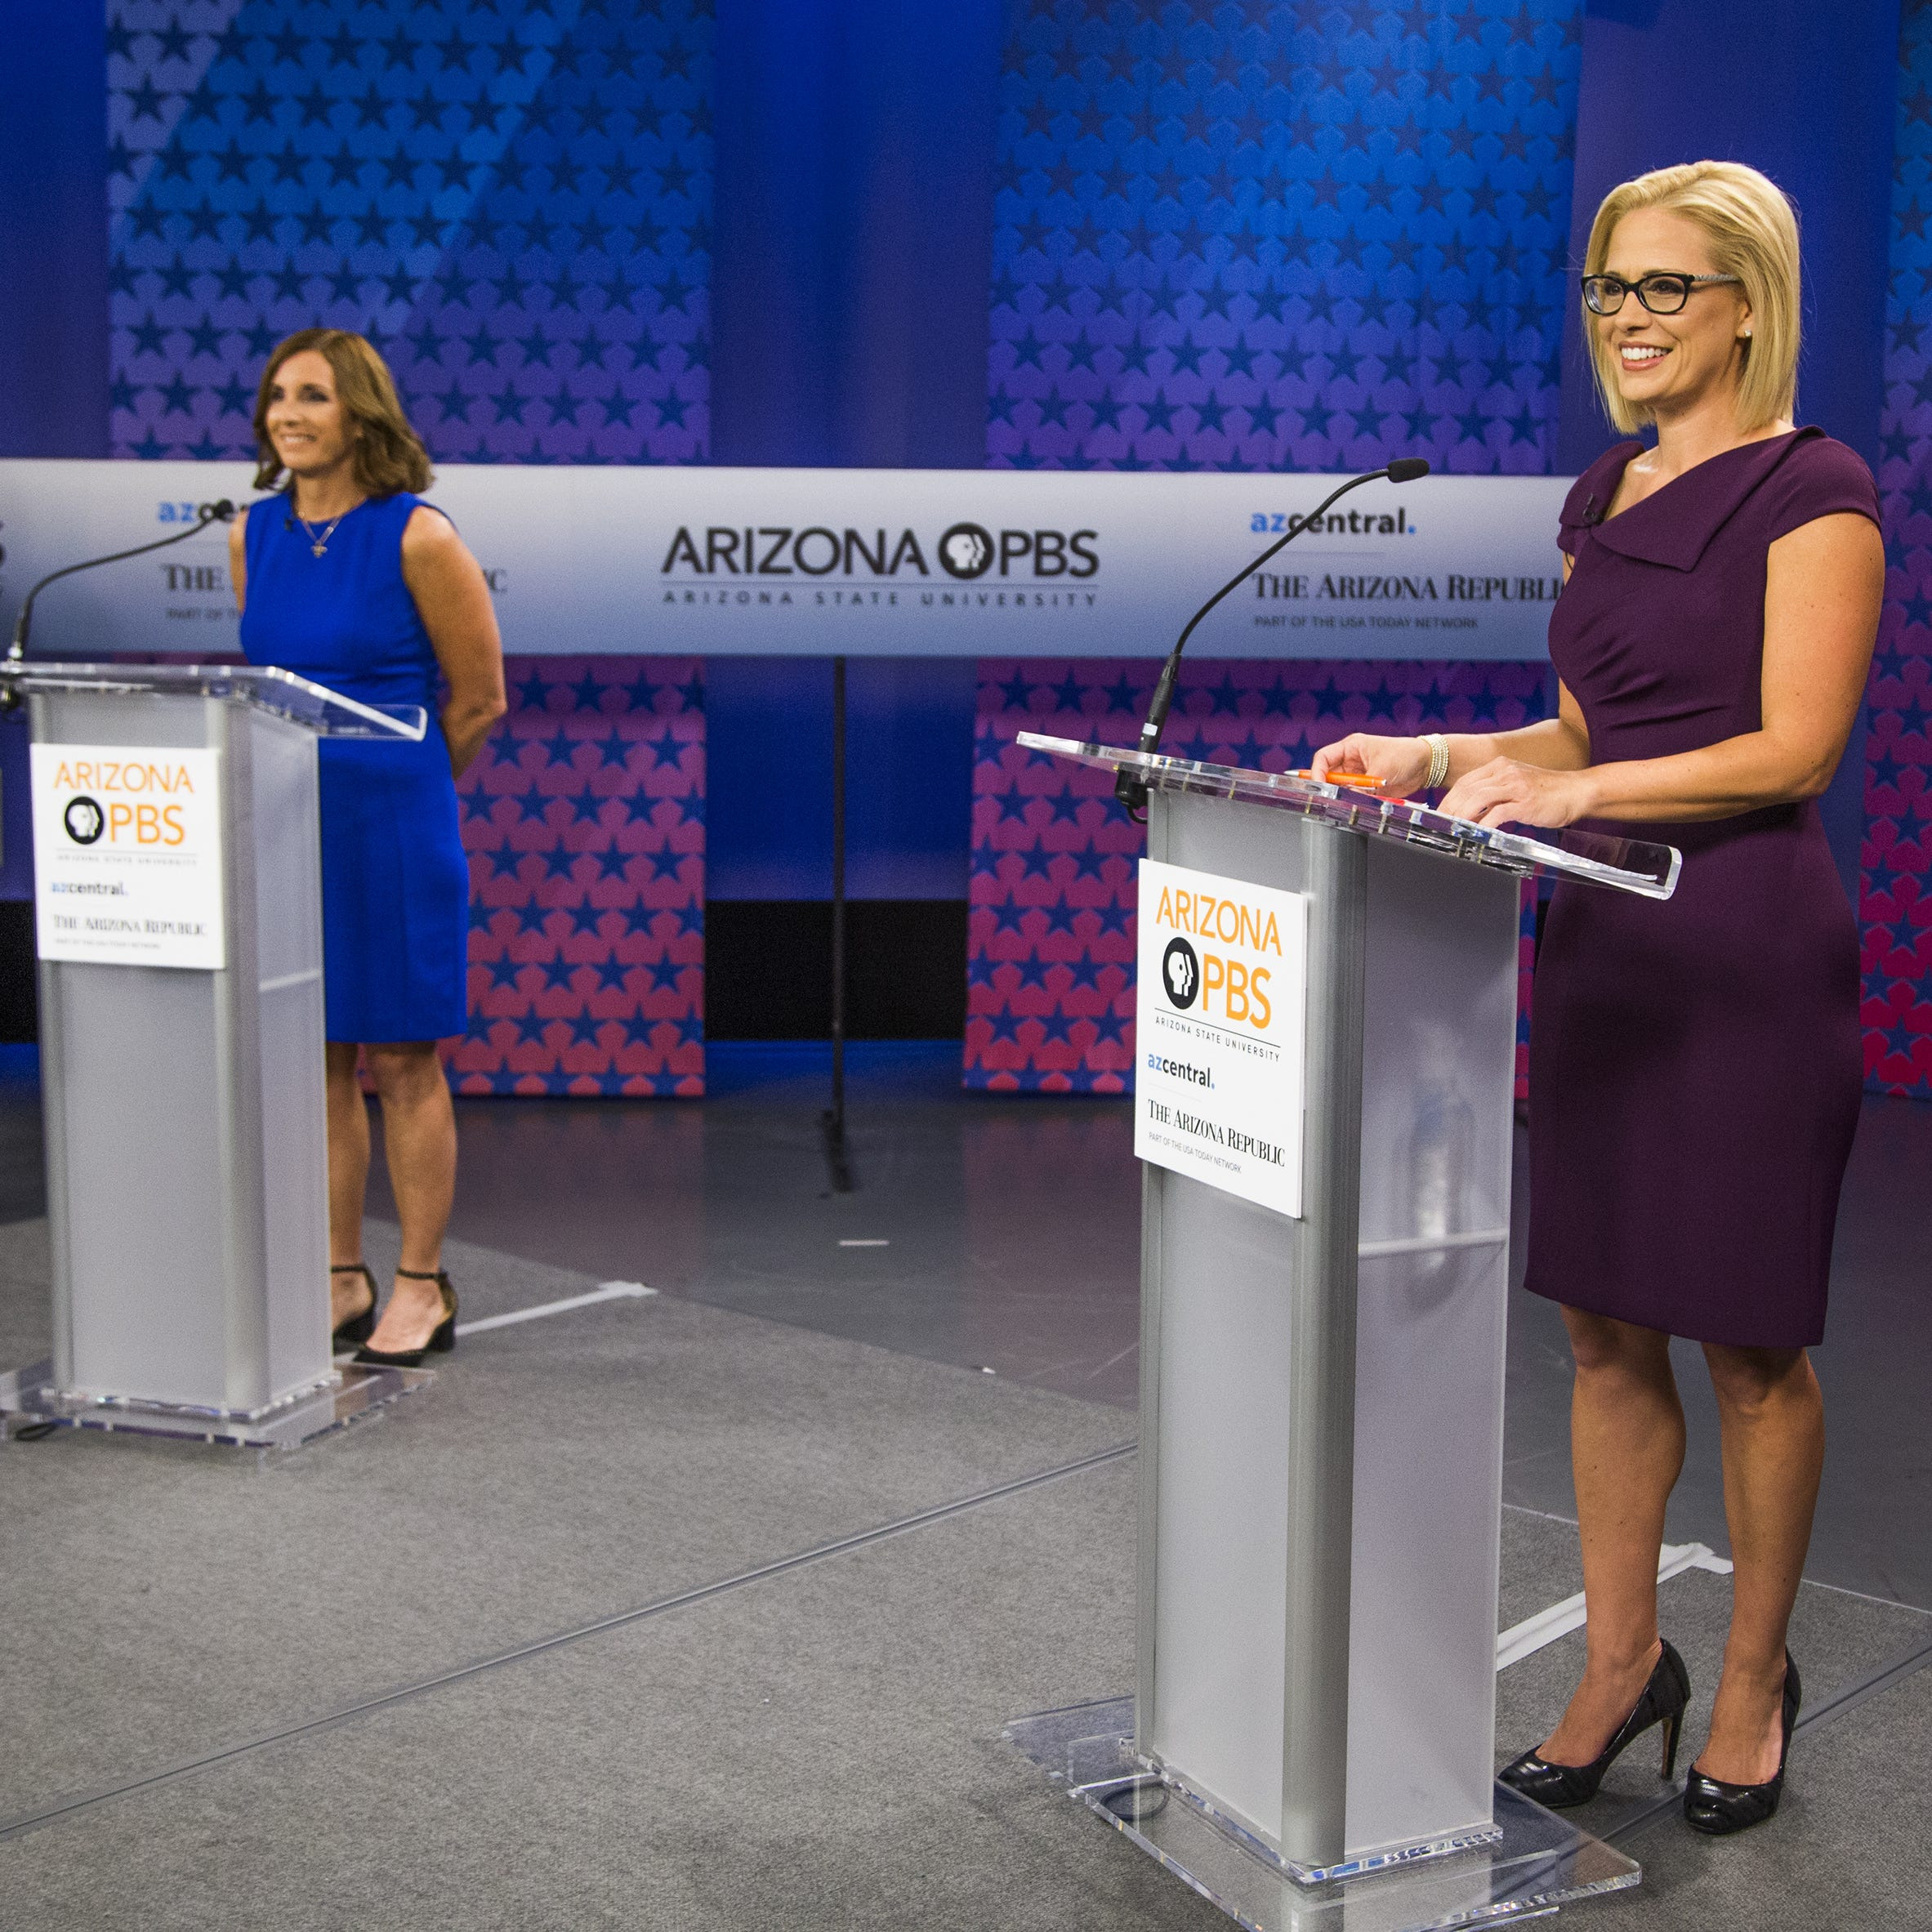 Watch LIVE: McSally and Sinema debate in U.S. Senate race for Arizona seat